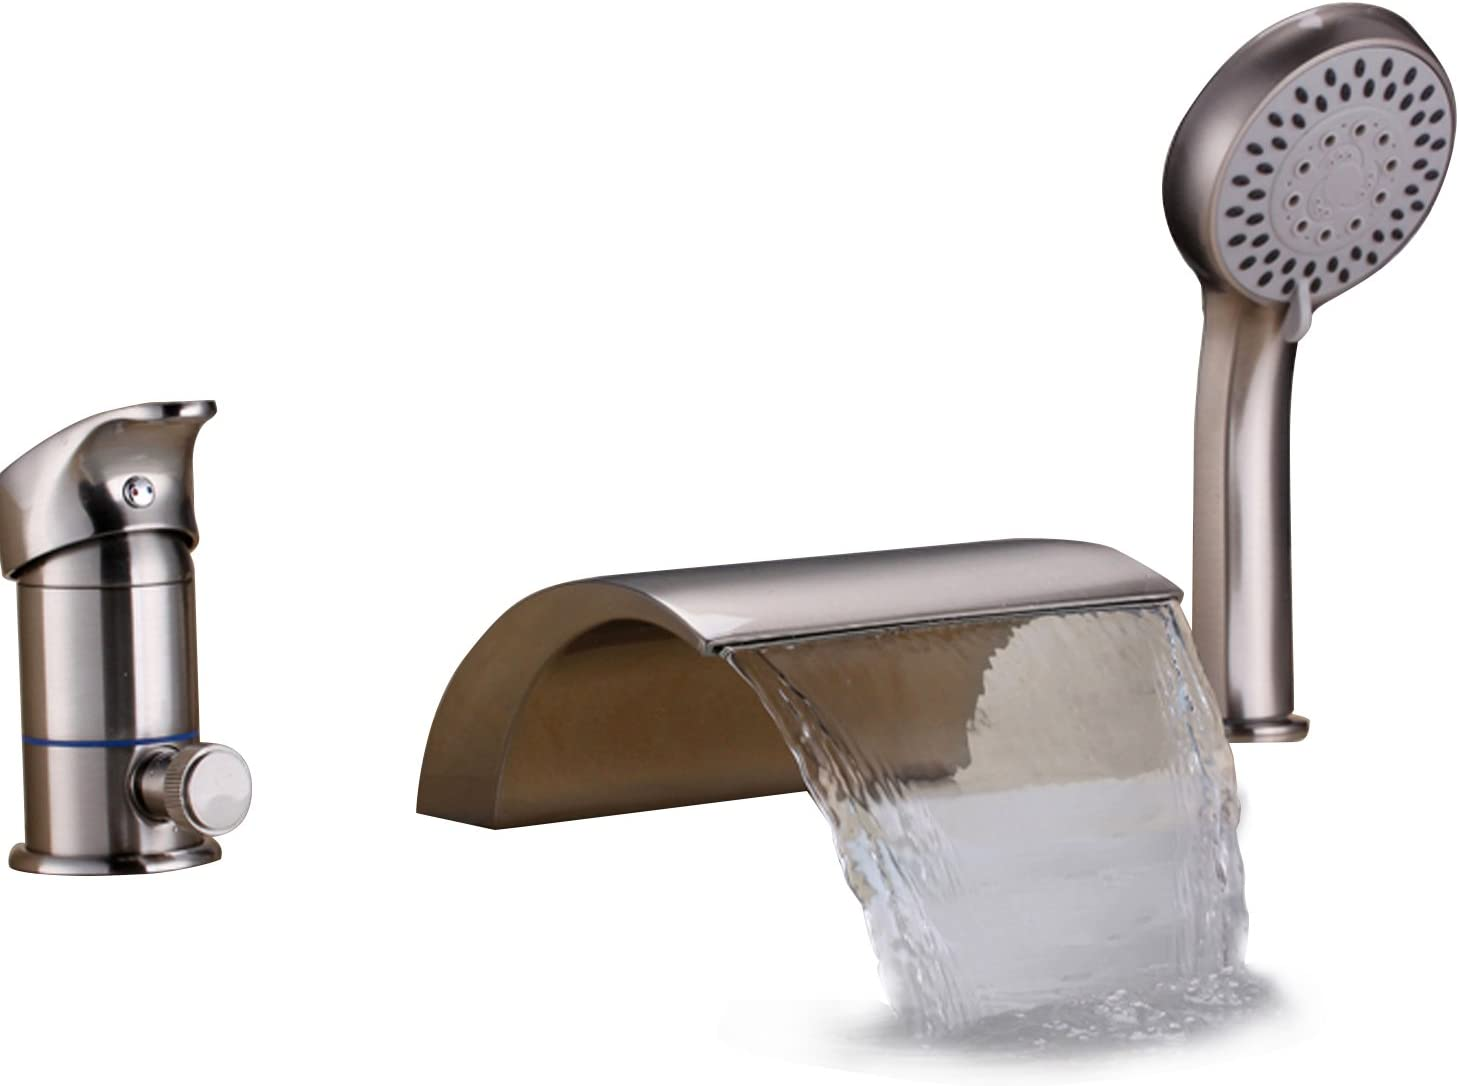 Lovedima Bathroom Waterfall Roman Tub Filler Faucets Handshower Valve Set (Brushed Nickel)